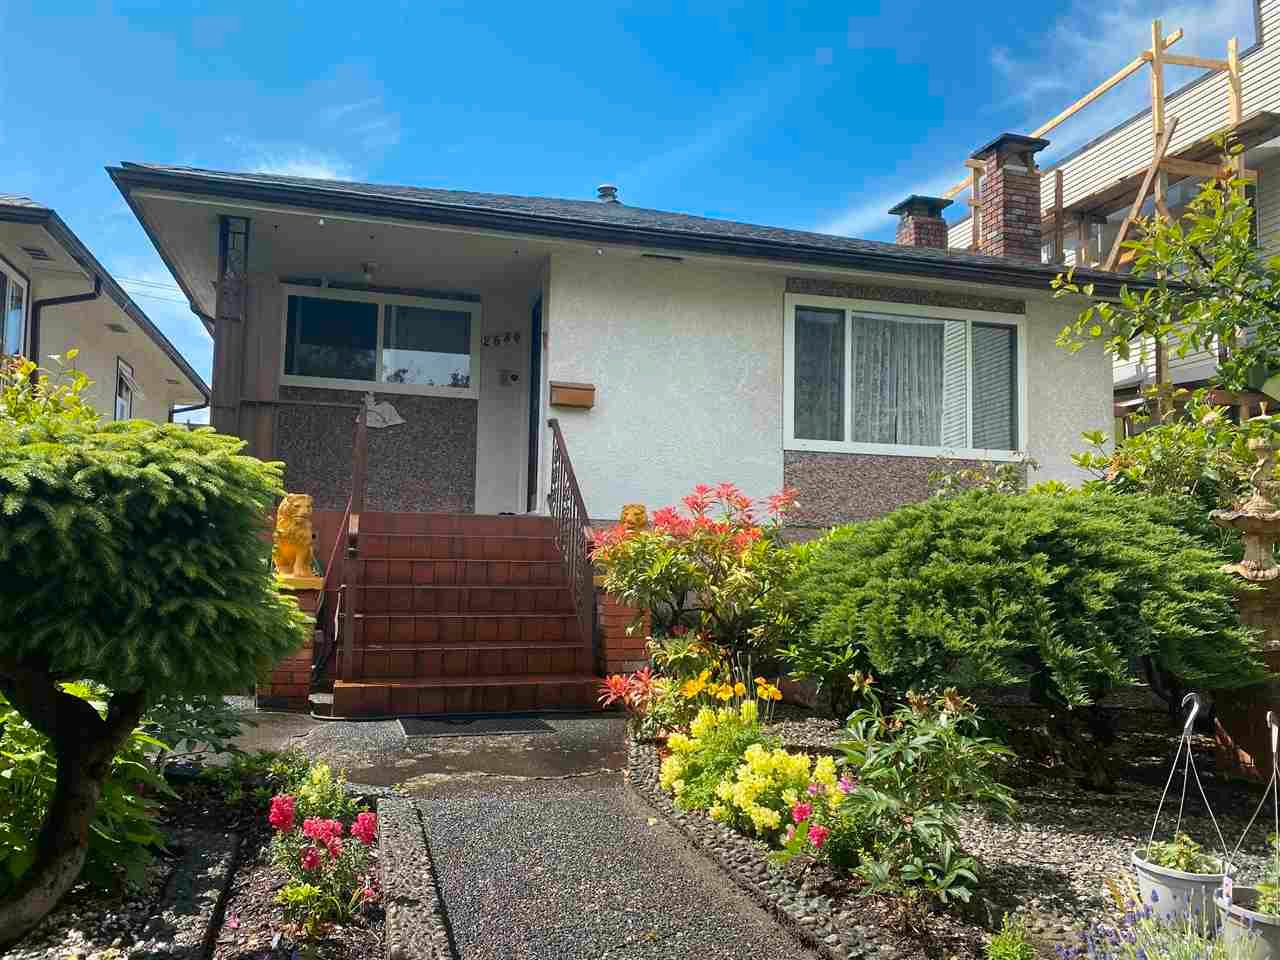 Main Photo: 2630 FRANKLIN Street in Vancouver: Hastings Sunrise House for sale (Vancouver East)  : MLS®# R2592482